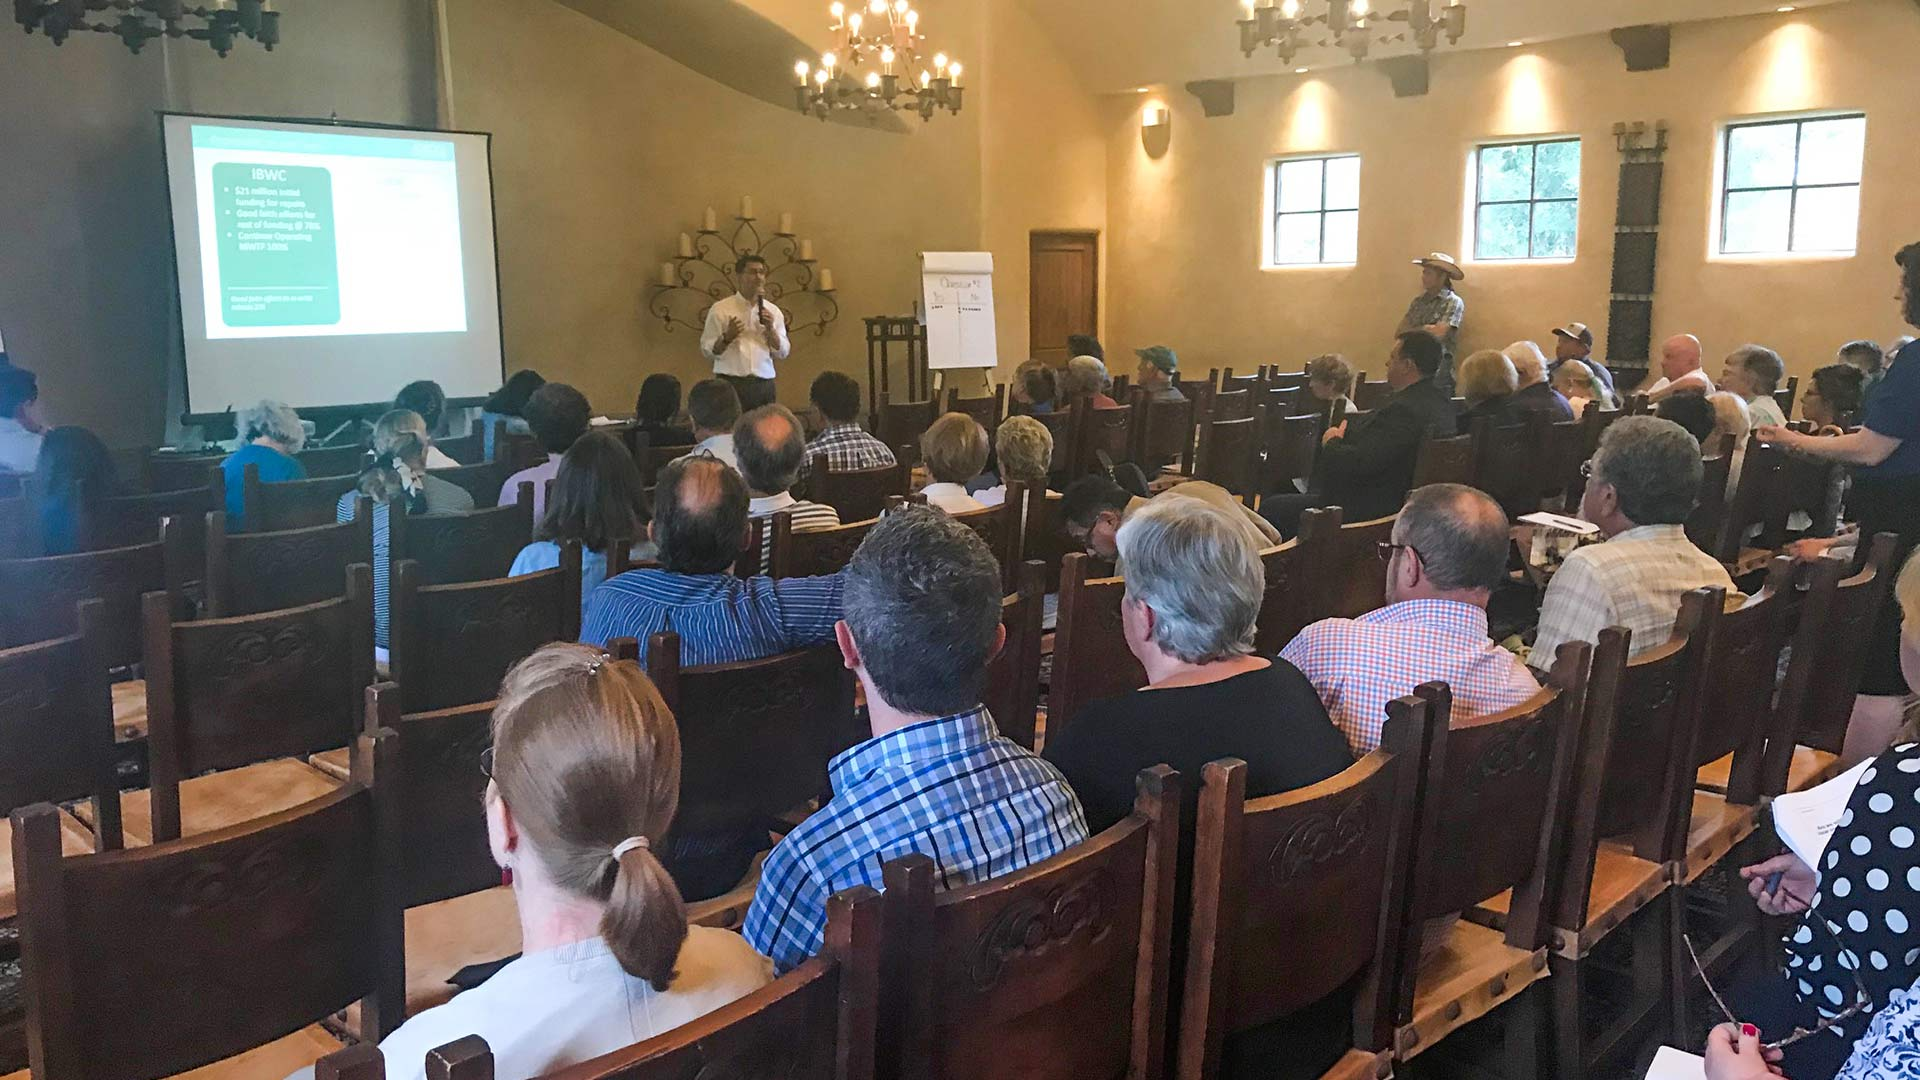 Misael Cabrera, director of the Arizona Department of Environmental Quality, meets July 10, 2018 with Southern Arizona residents about replacing the 8-mile IOI pipeline, which carries raw sewage from Mexico into Arizona. The treated water is then released into the Santa Cruz River.